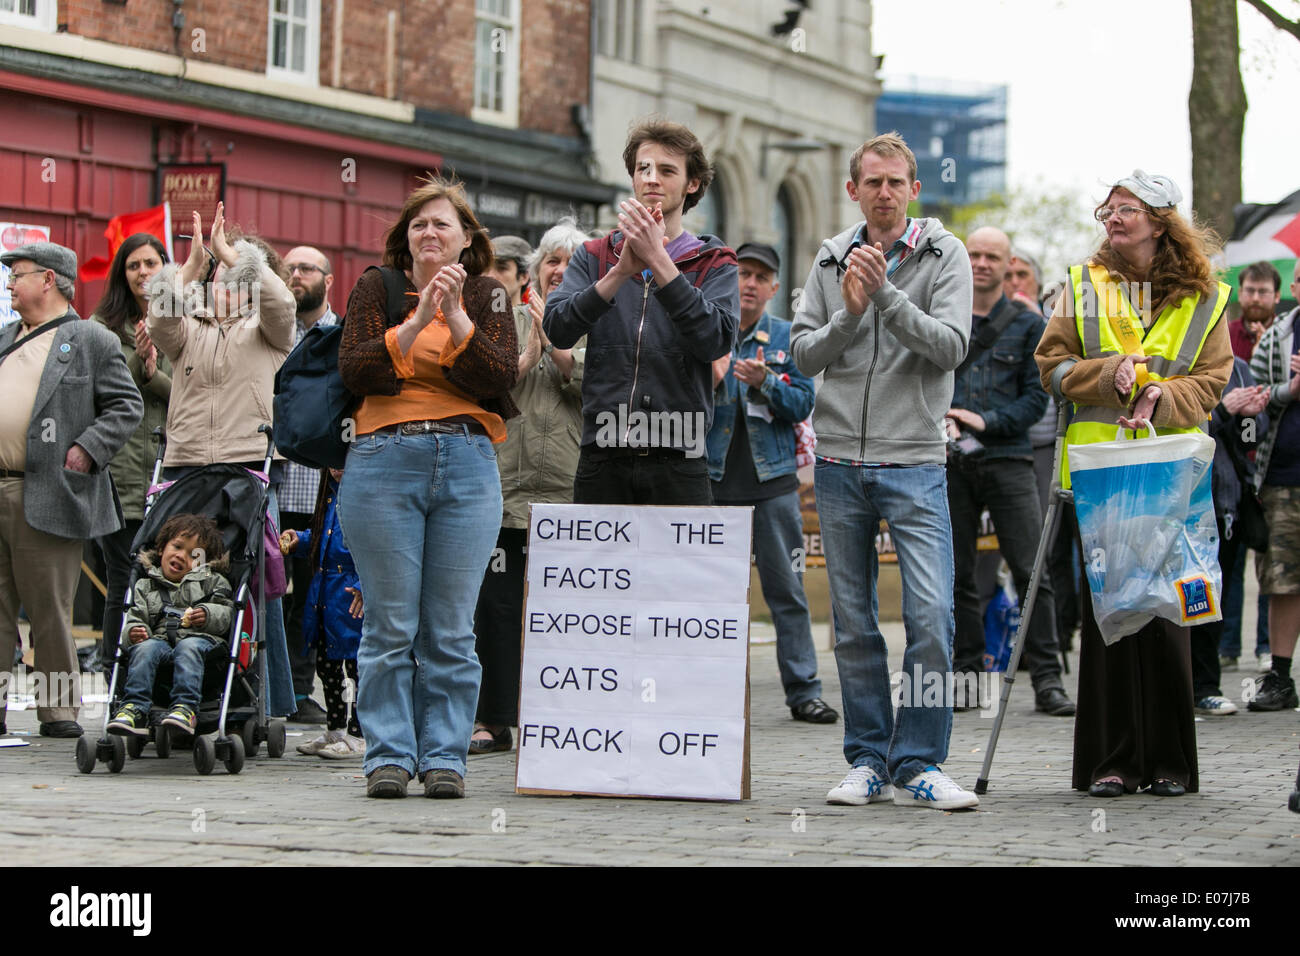 Salford, Manchester, UK. 5th May 2014. Demonstrators marched from Bexley Square in Salford to Cathedral Gardens in Manchester city centre on Monday, May 5, 2014, to protest against various issues including government cuts, bedroom tax, fracking and UKIP (UK Independance Party). Credit:  Christopher Middleton/Alamy Live News - Stock Image